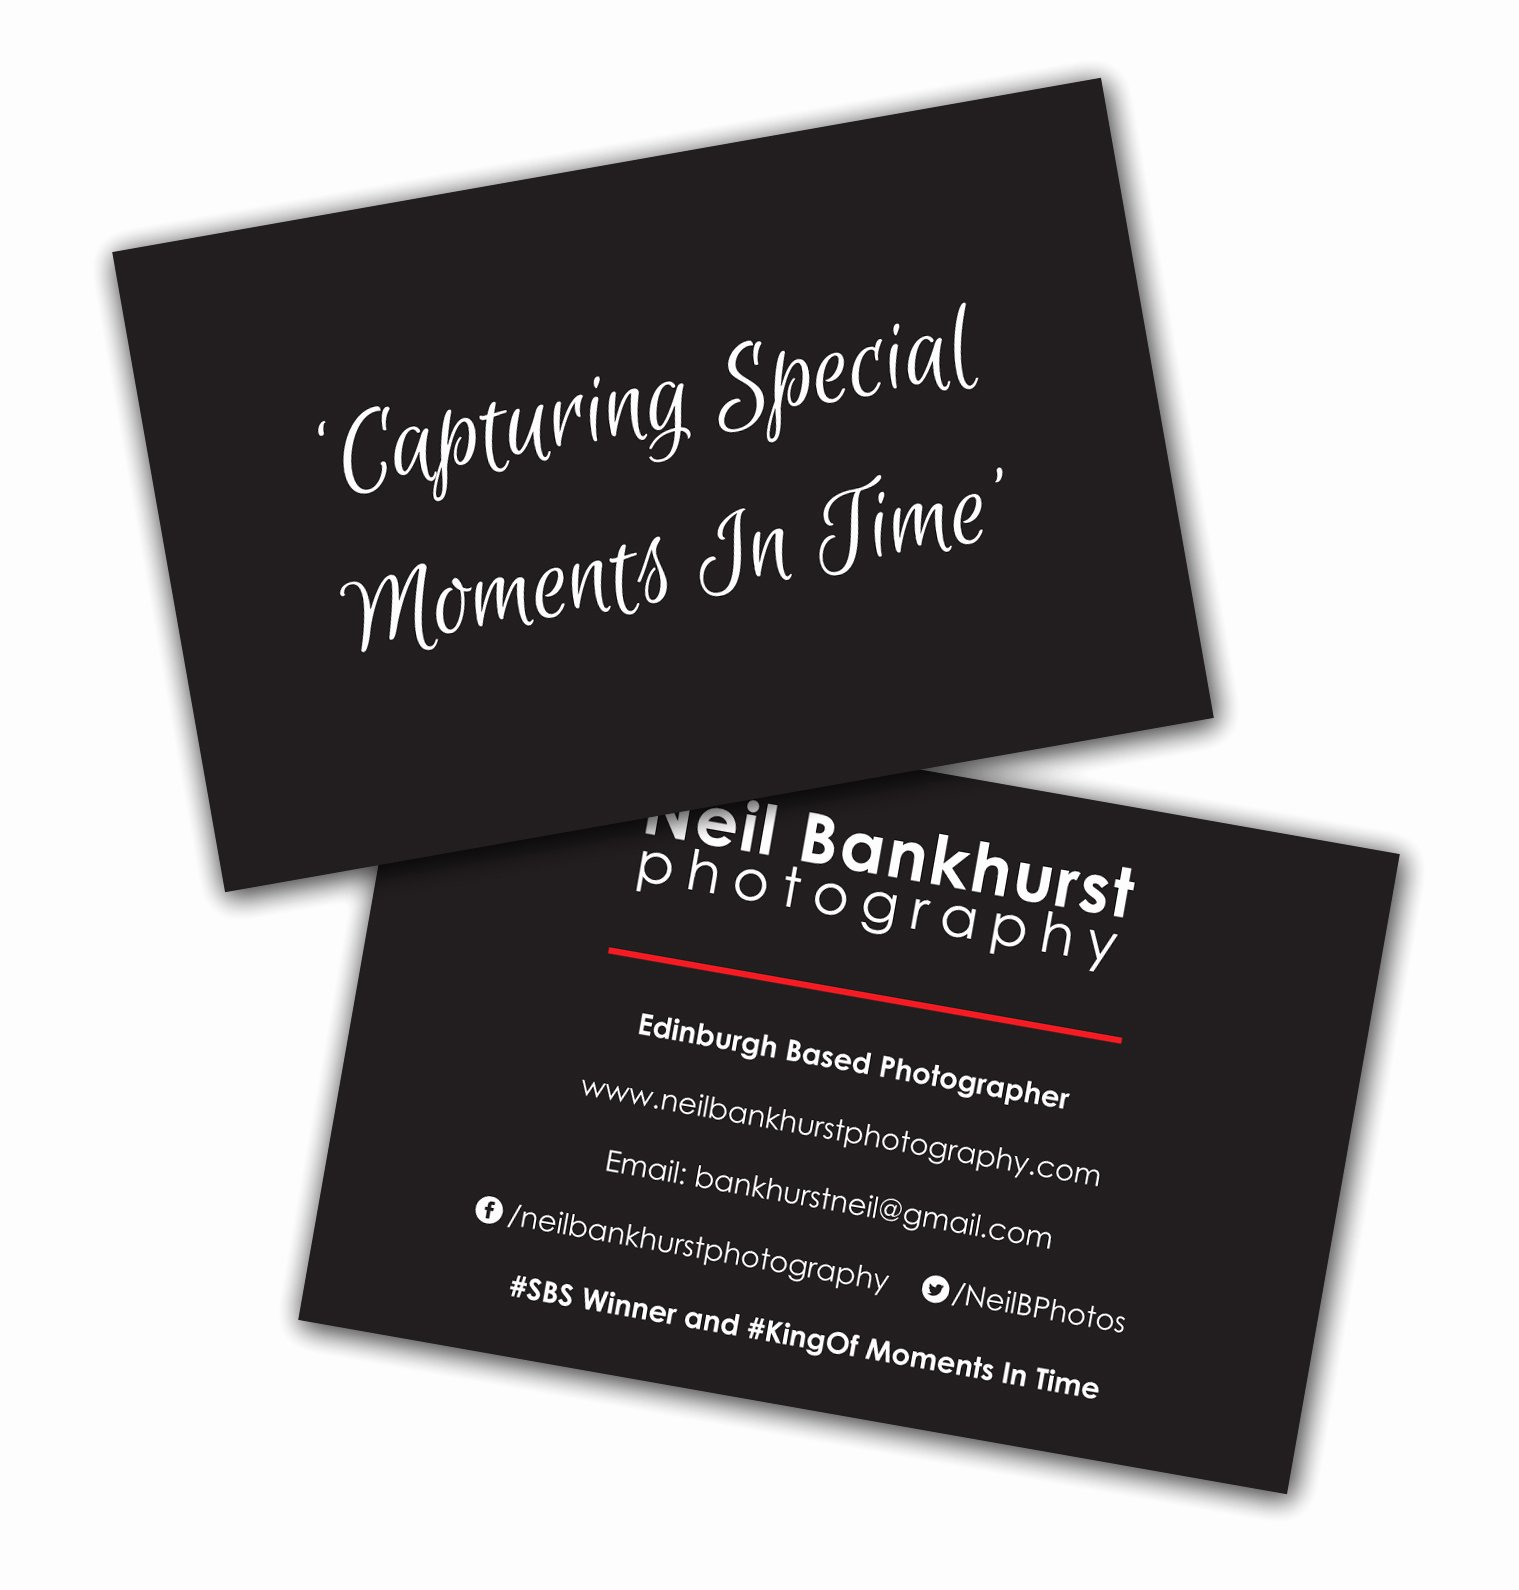 Business Cards for Photographers Lovely Neil Bankhurst Graphy Business Cards